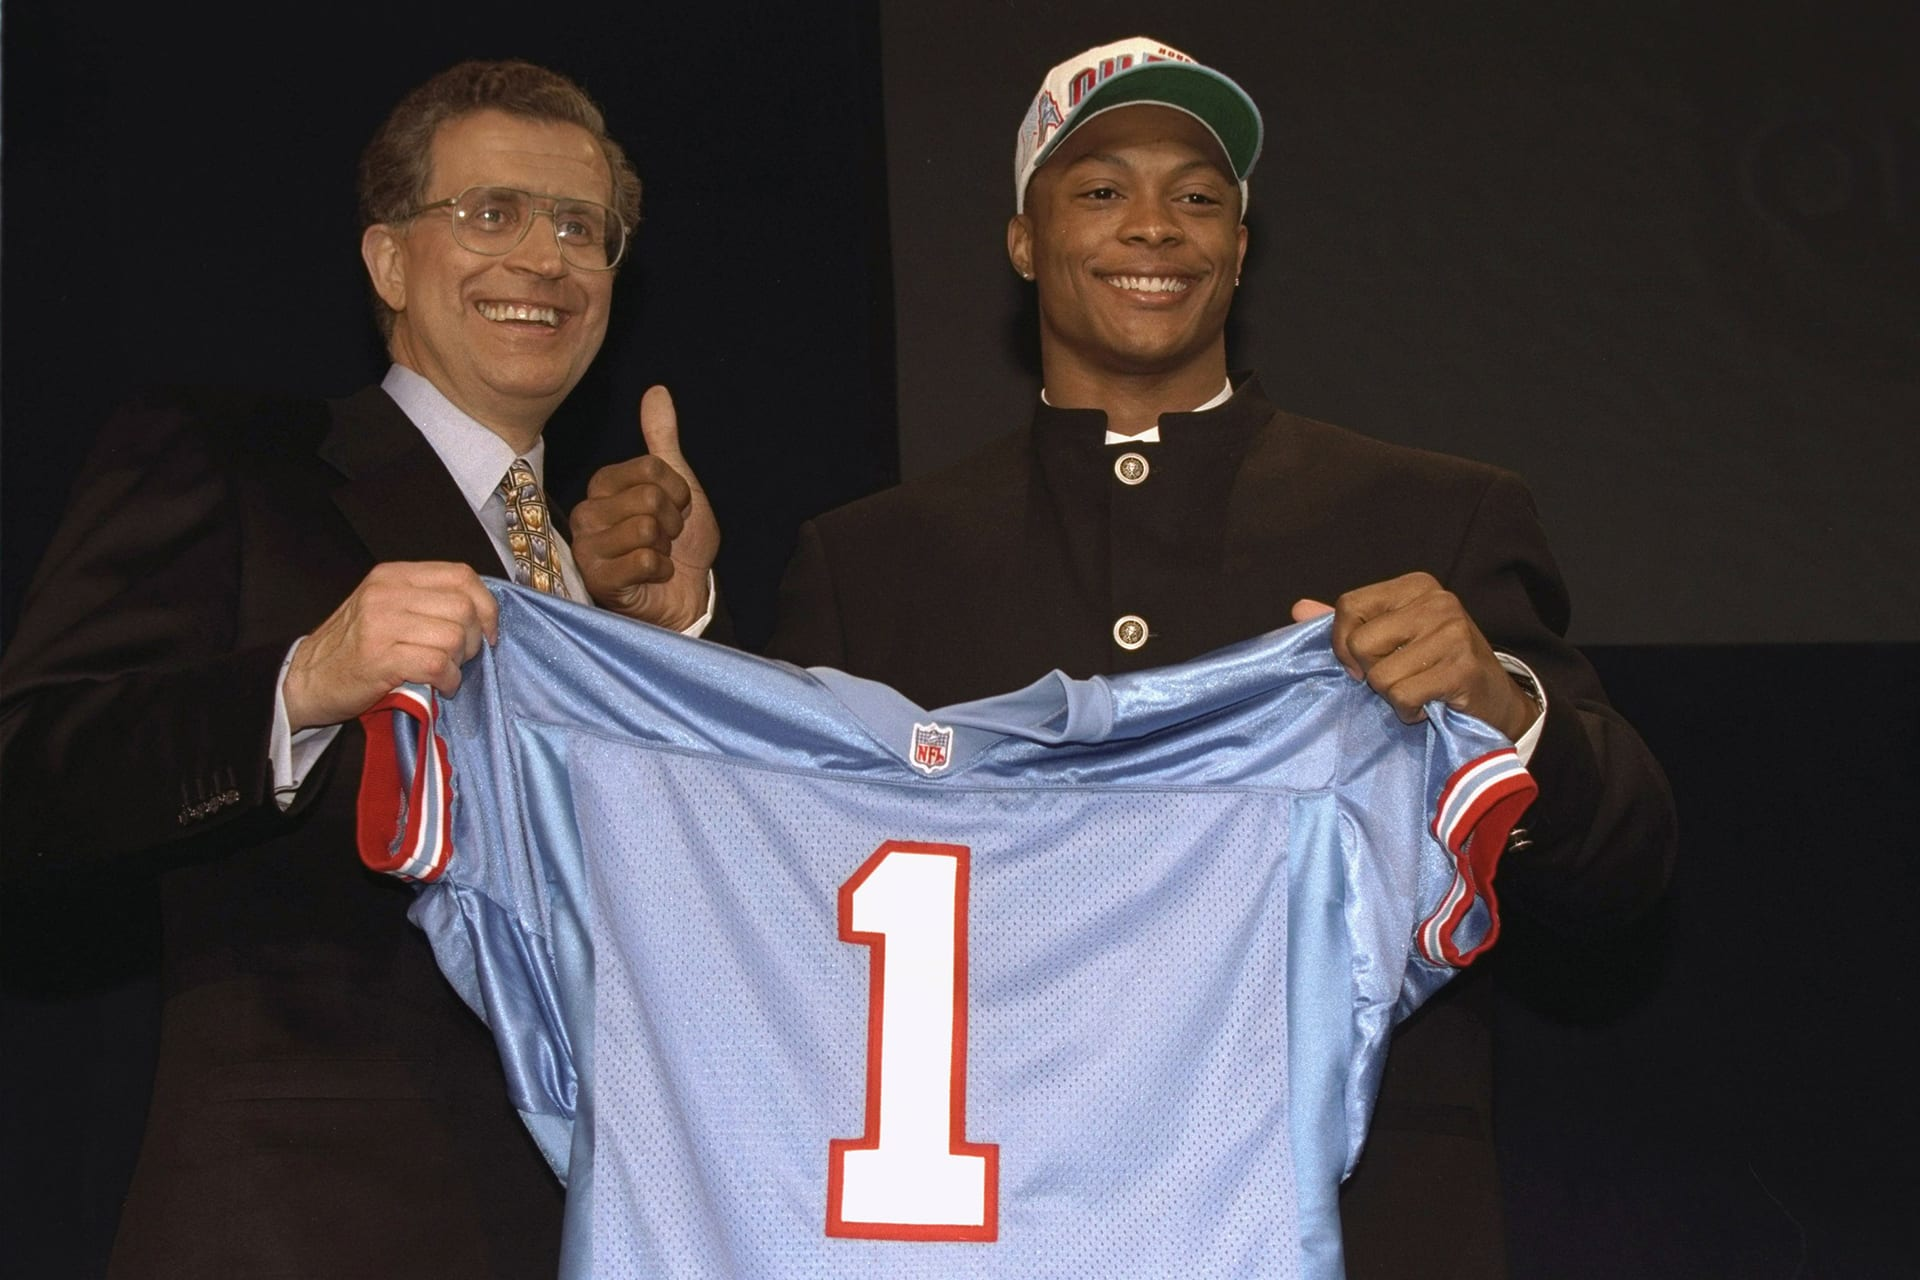 Football: NFL Draft: Closeup of Houston Oilers running back and No 14 overall pick Eddie George victorious on stage with NFL commissioner Paul Tagliabue during selection process at Madison Square Garden.  New York, NY 4/20/1996 CREDIT: Manny Millan (Photo by Manny Millan /Sports Illustrated/Getty Images) (Set Number: X50613 )